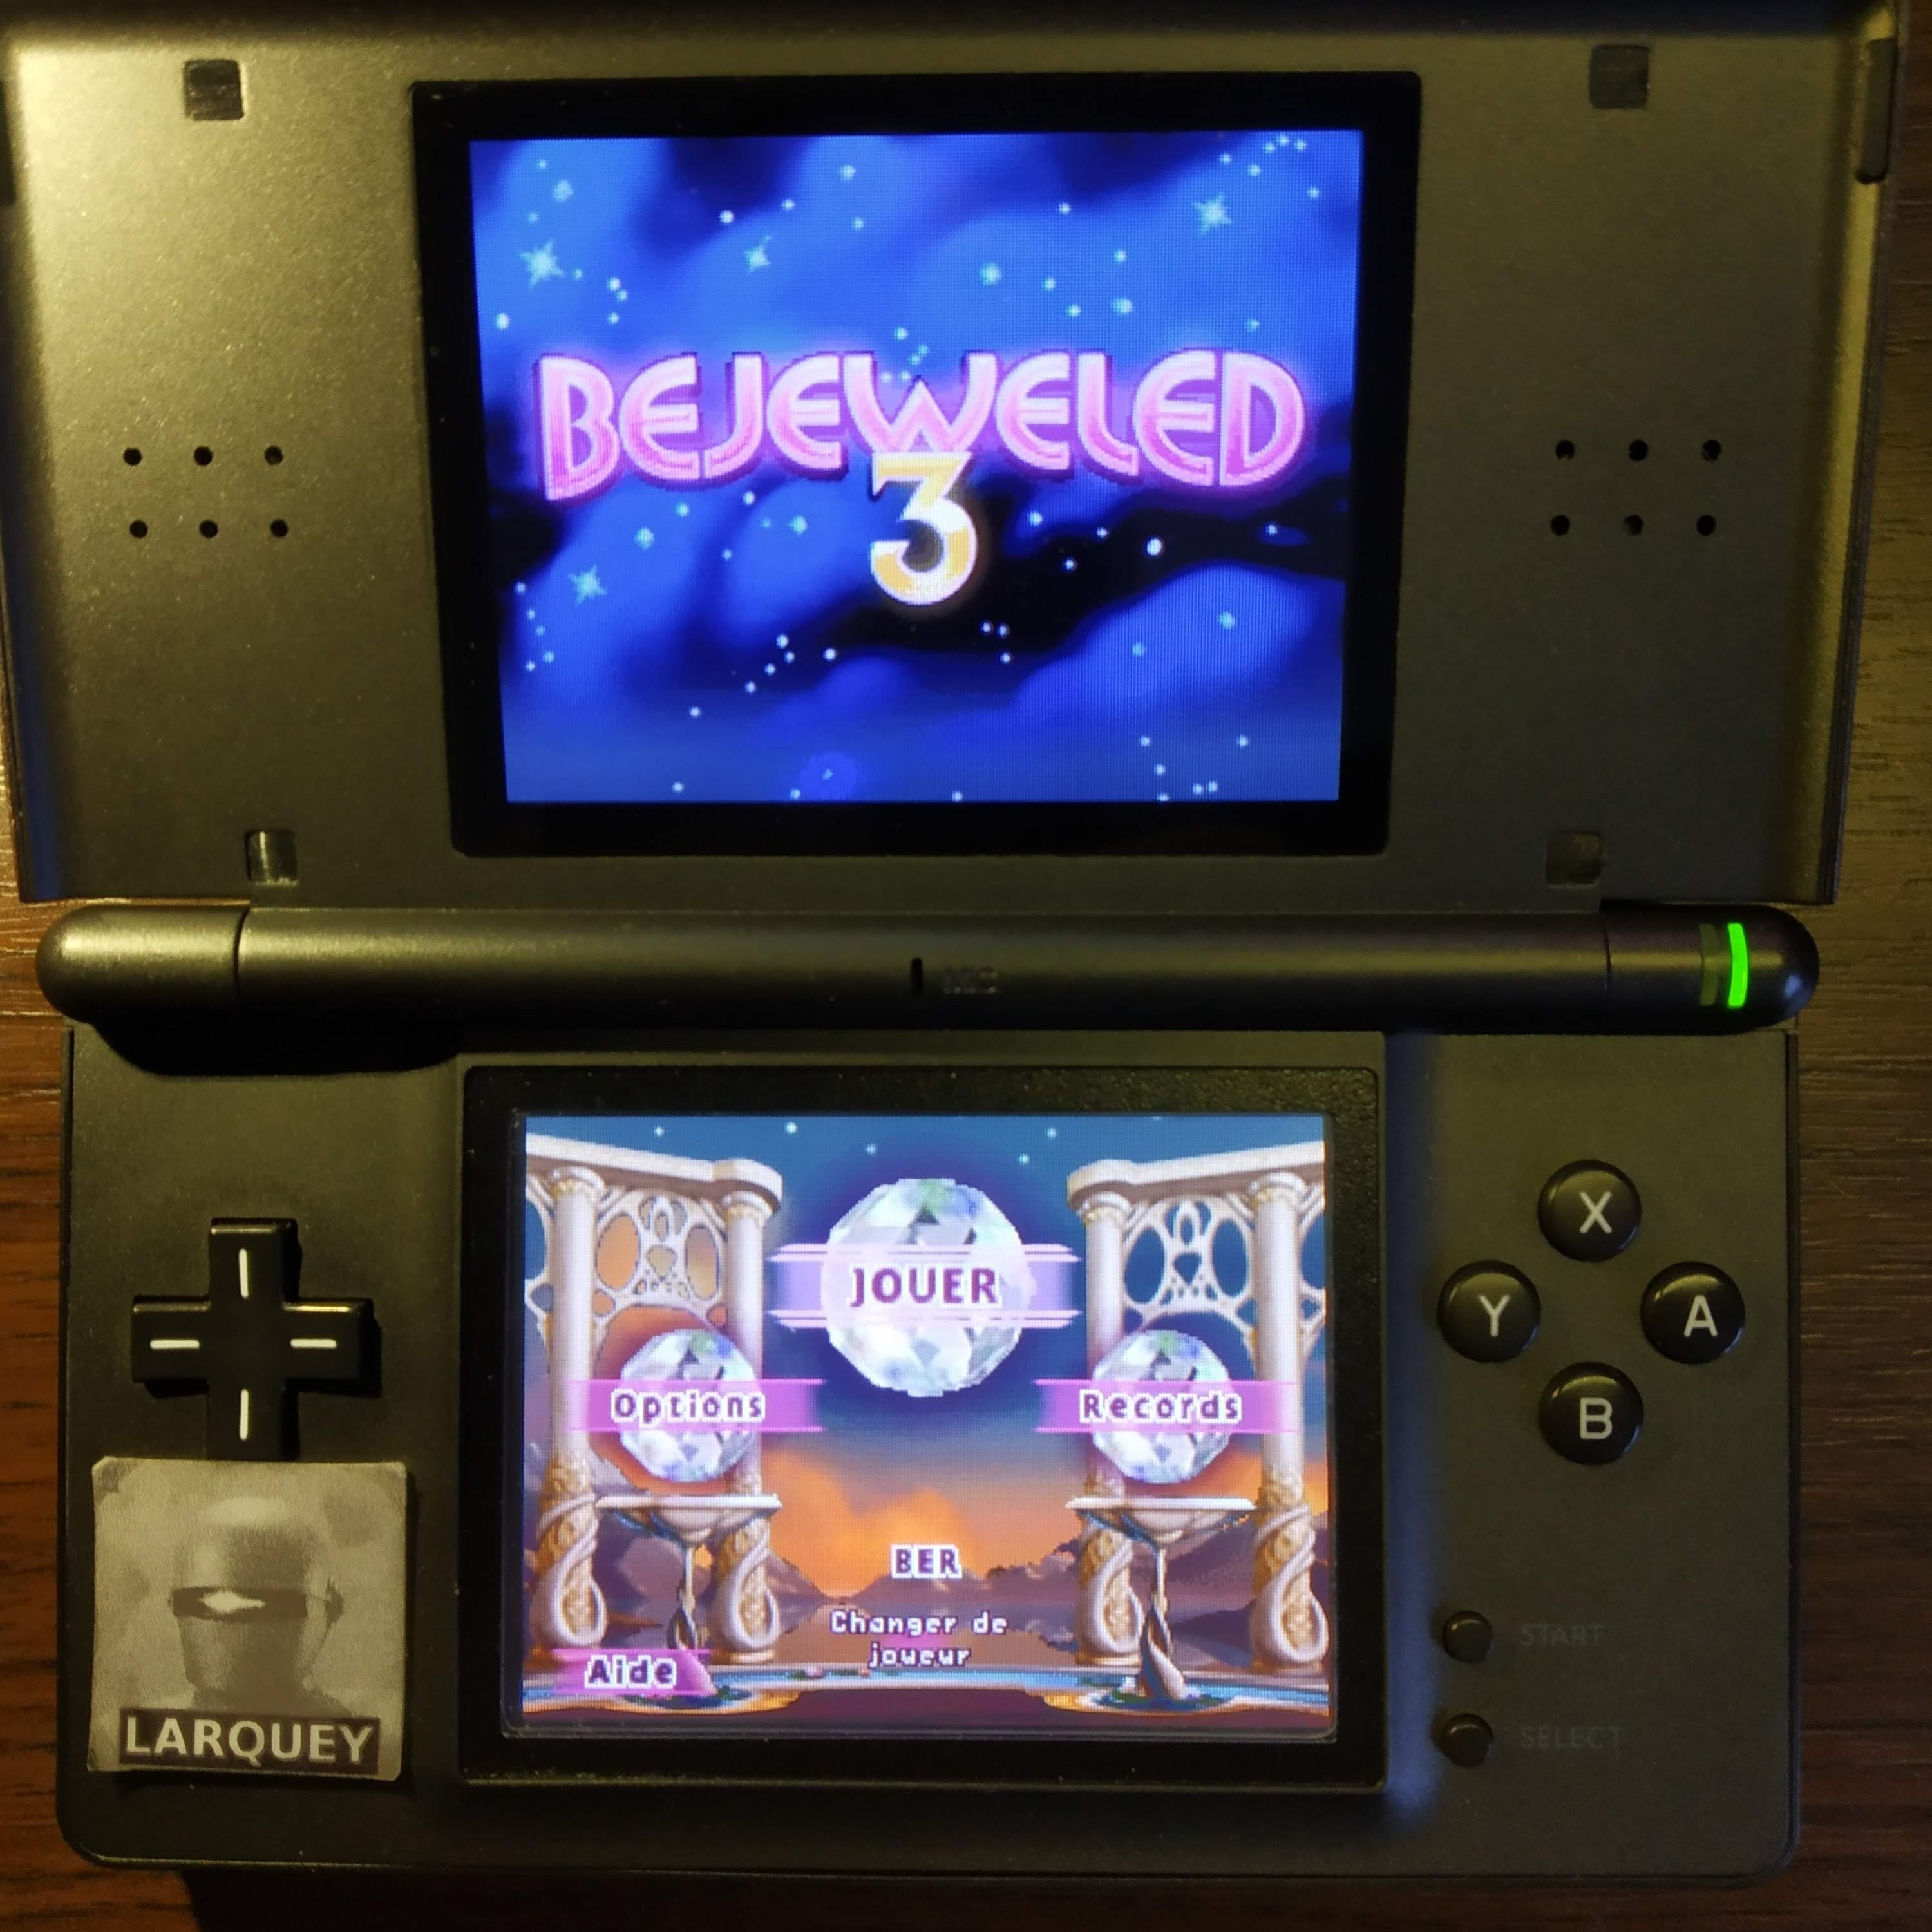 Larquey: Bejeweled 3: Classic [Number of Flame Gems] (Nintendo DS) 5 points on 2020-09-24 12:26:15